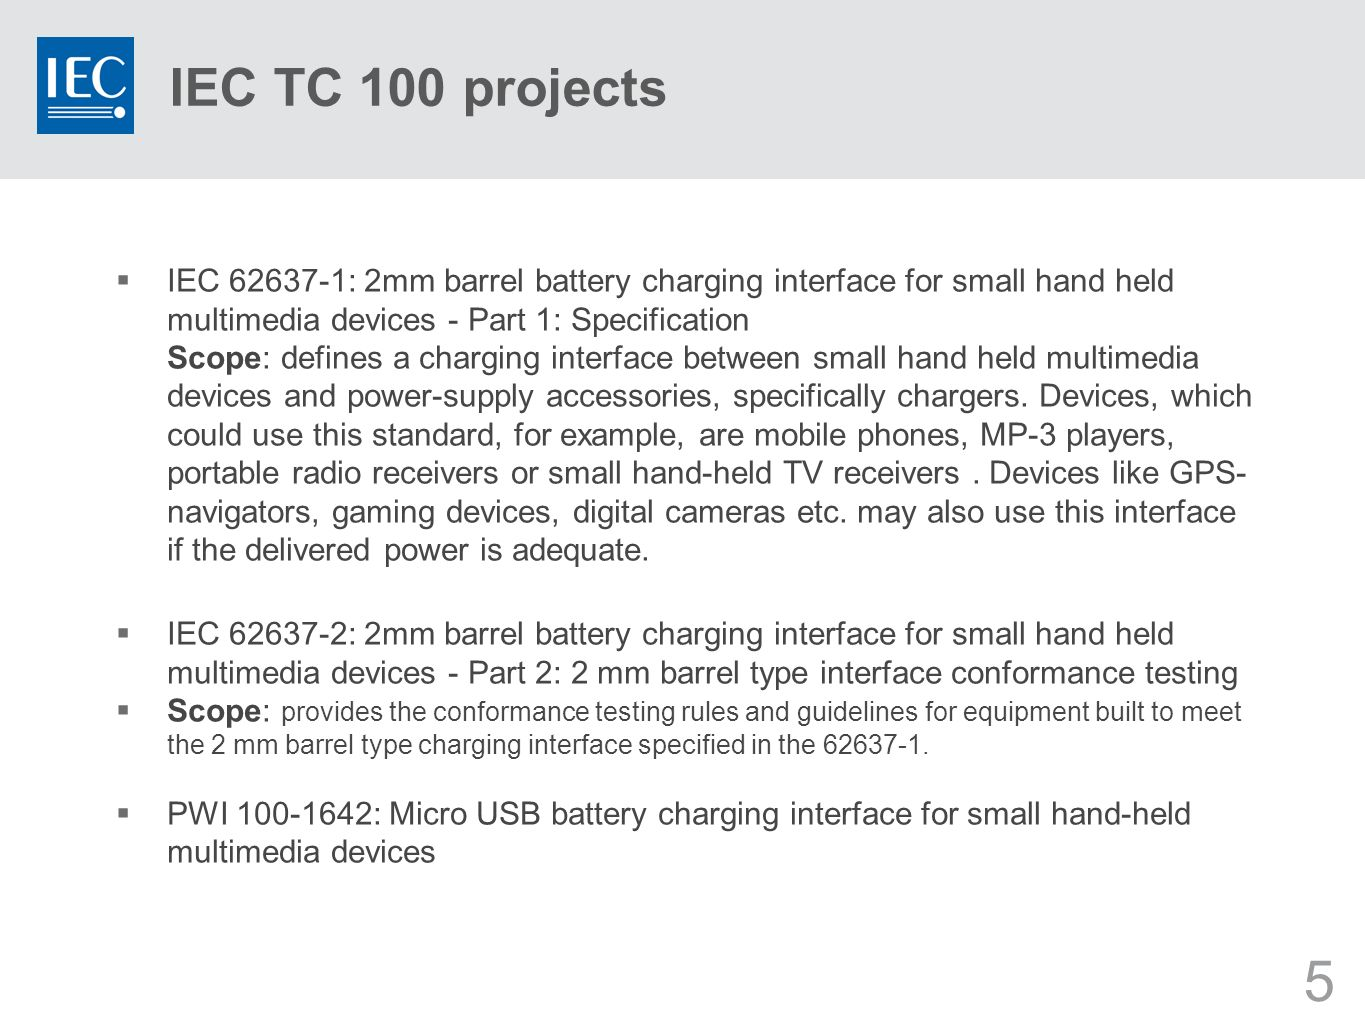 5 IEC TC 100 projects IEC 62637-1: 2mm barrel battery charging interface for small hand held multimedia devices - Part 1: Specification Scope: defines a charging interface between small hand held multimedia devices and power-supply accessories, specifically chargers.